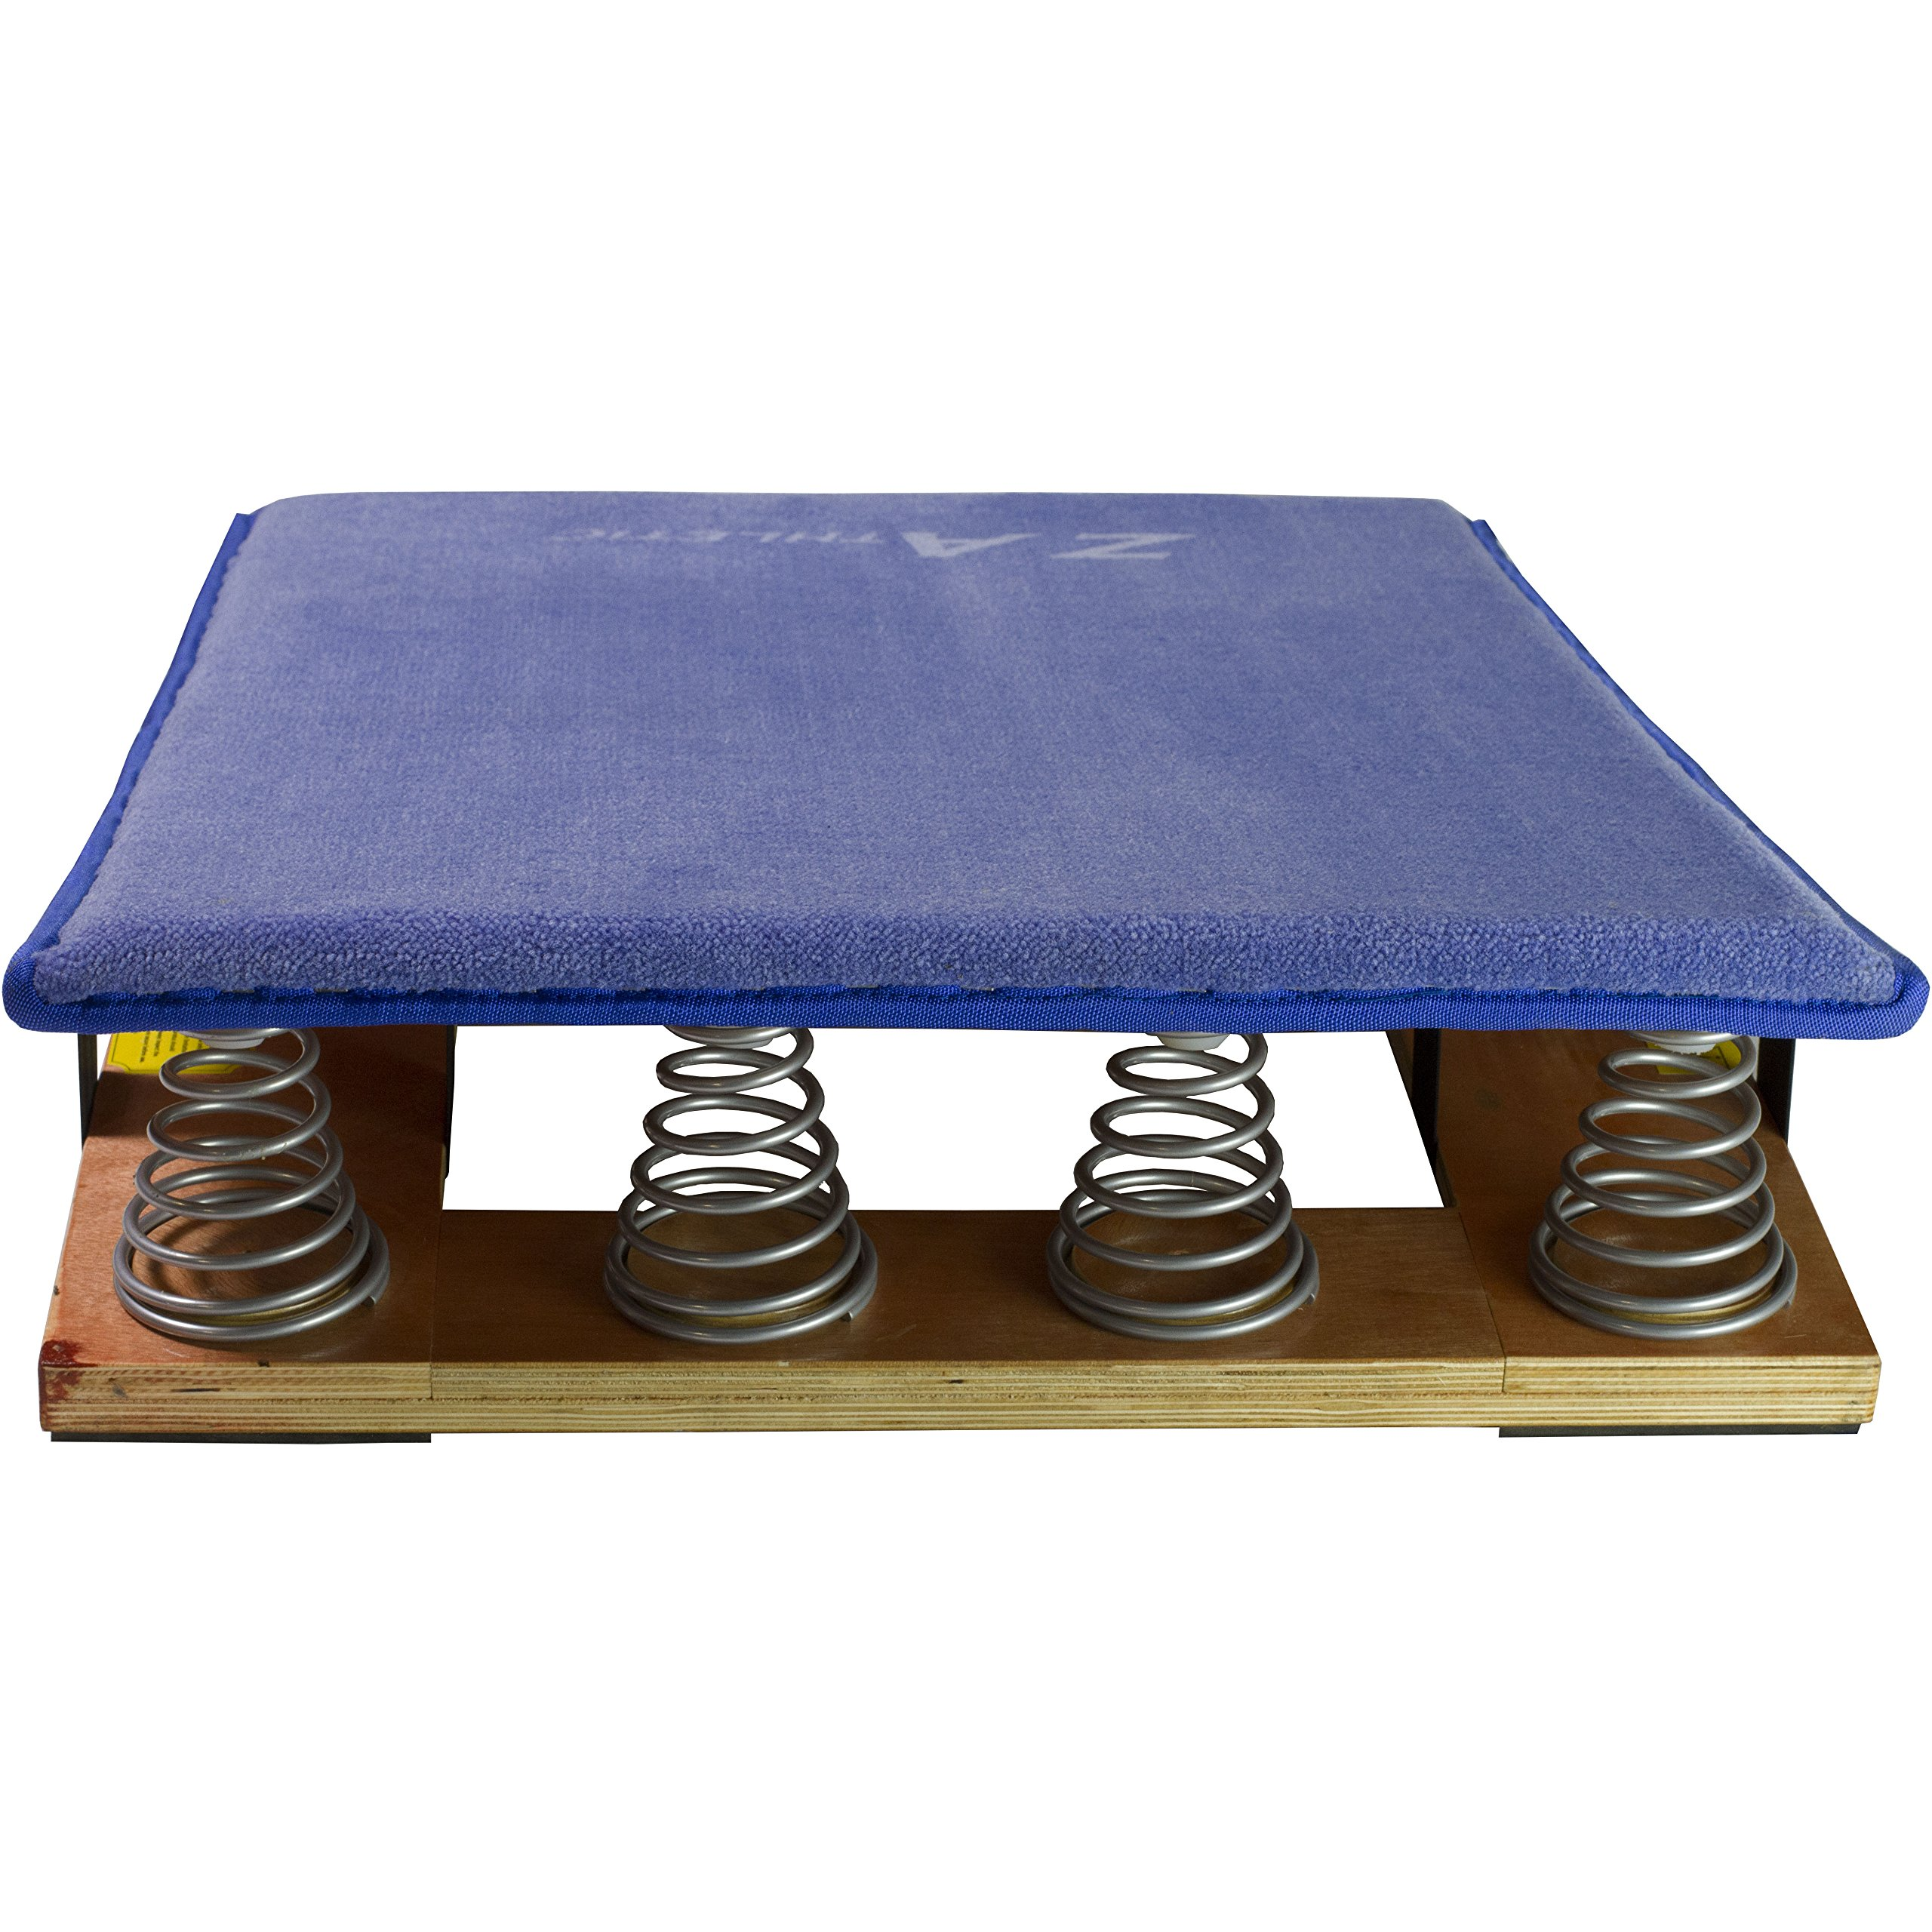 Z-Athletic Junior Springboard for Gymnastics (Small, Blue) by Z-Athletic (Image #3)